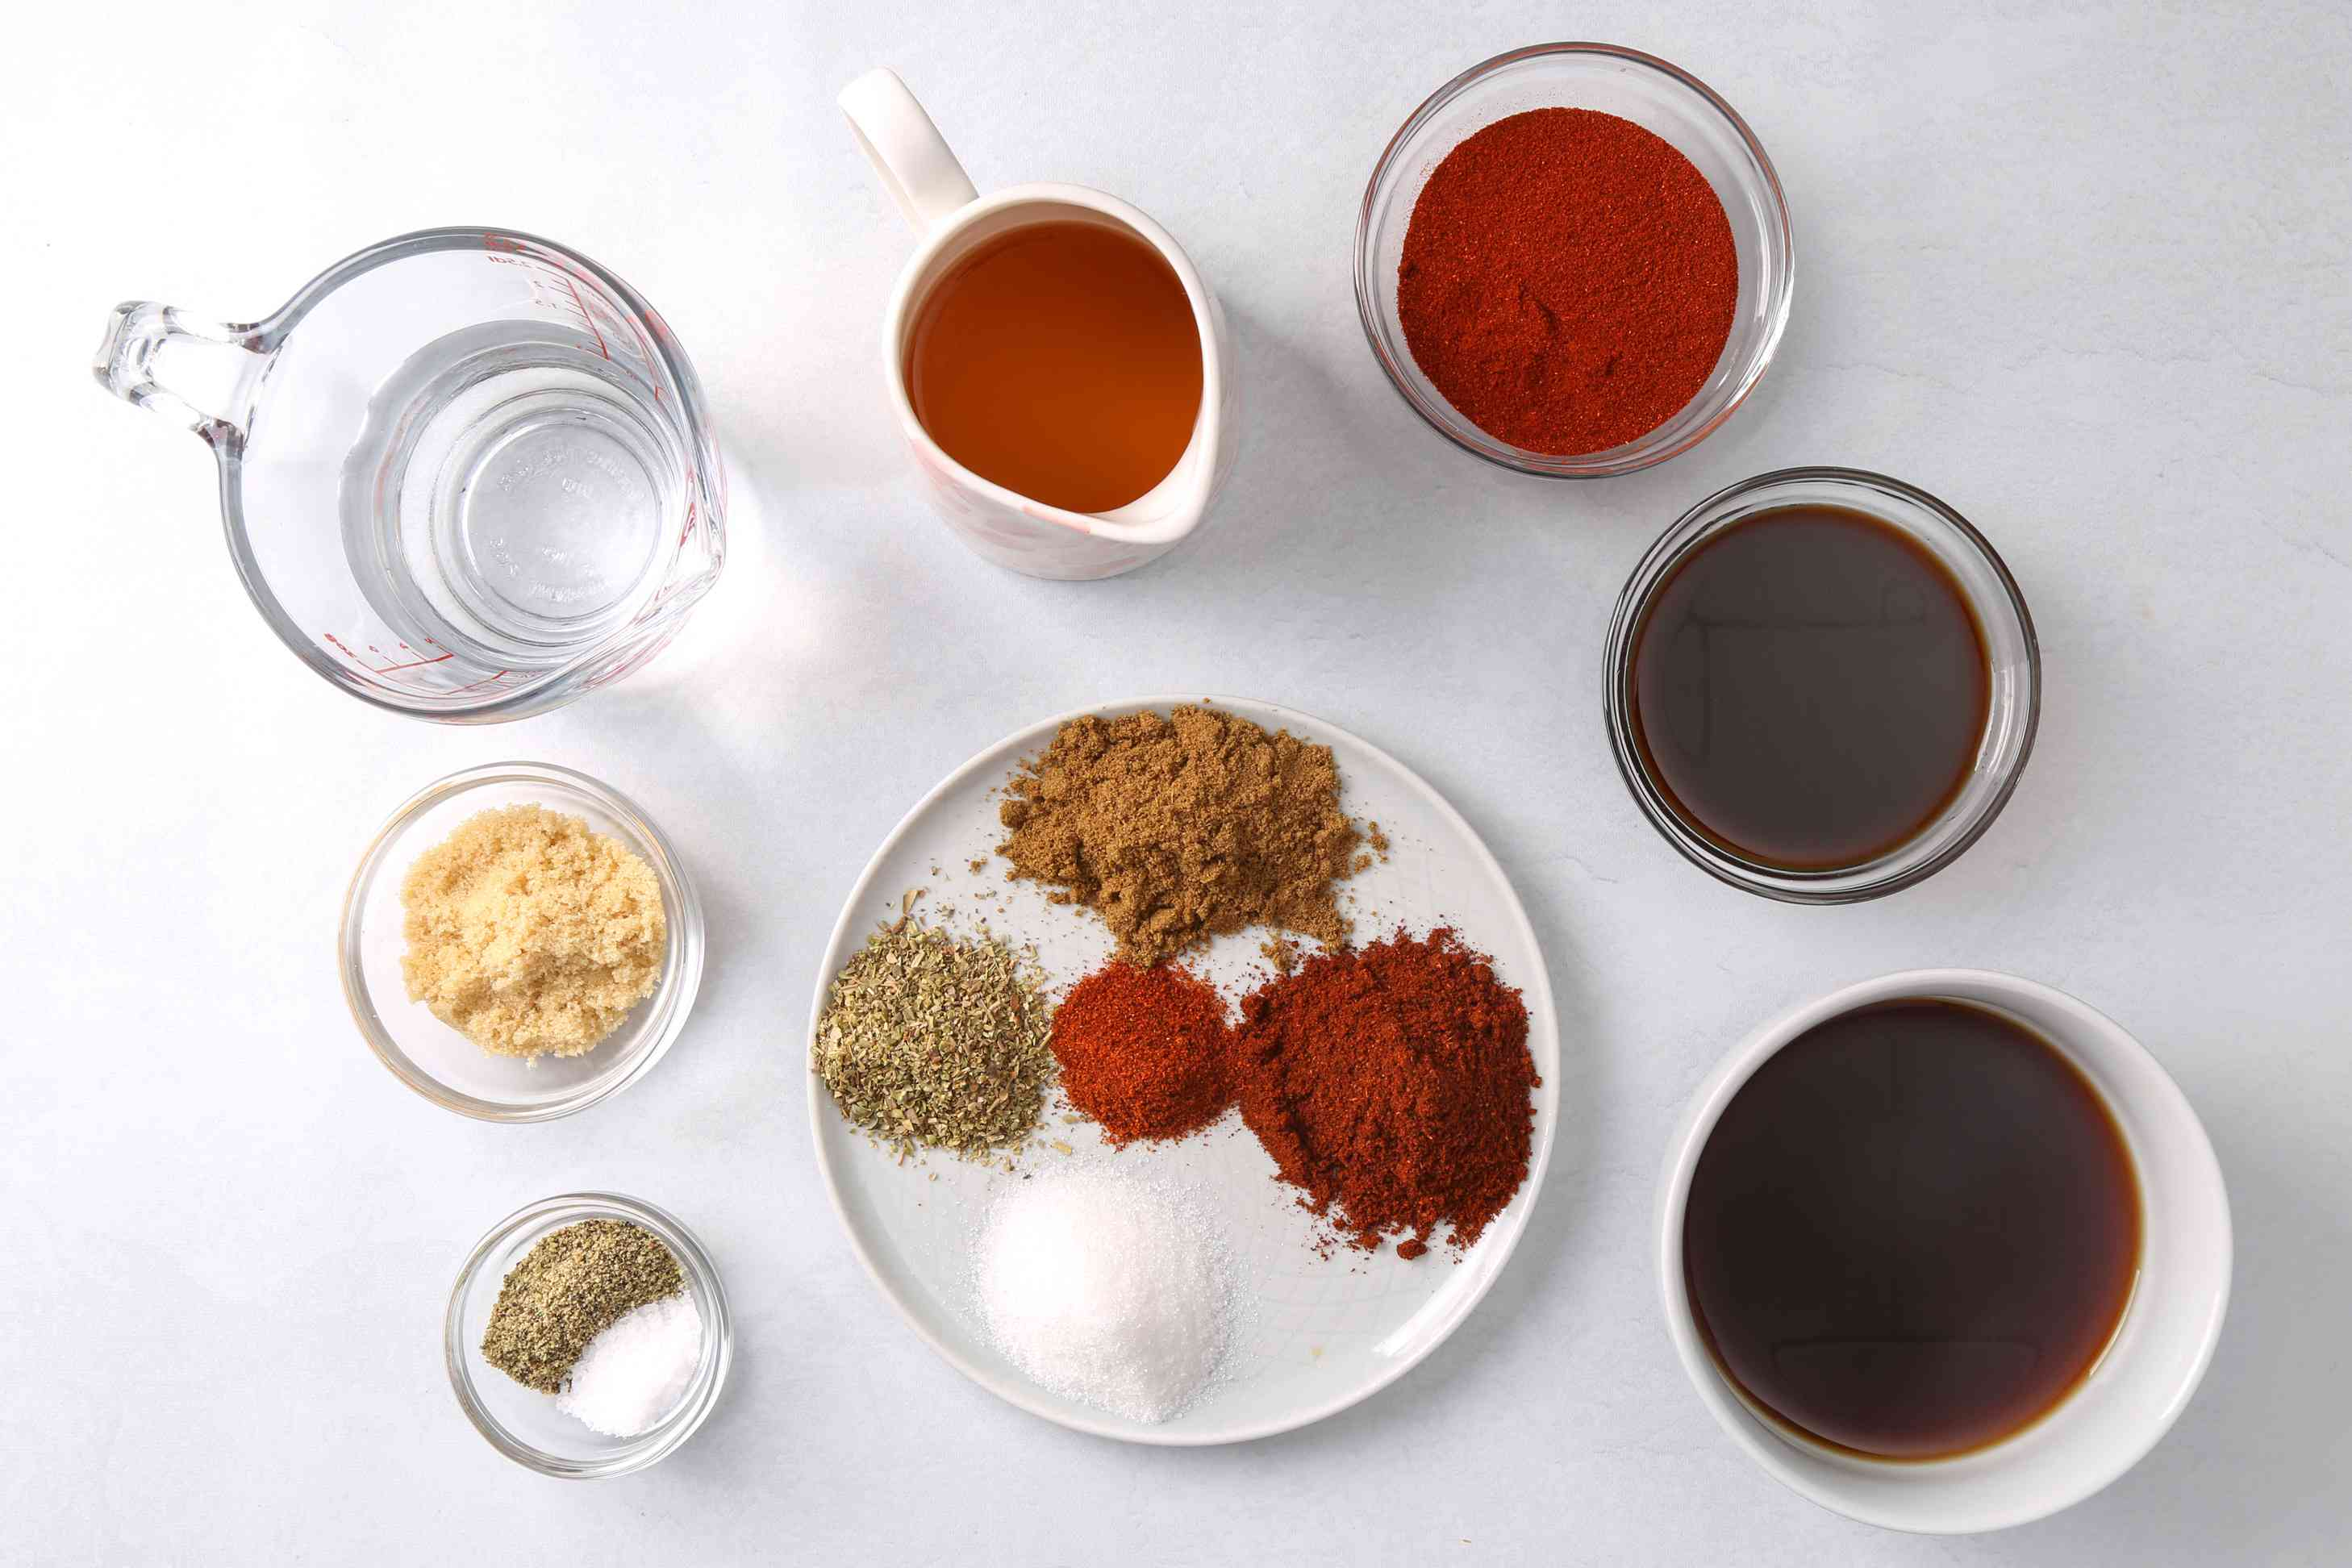 Barbecue Beef Ribs Basting Sauce ingredients